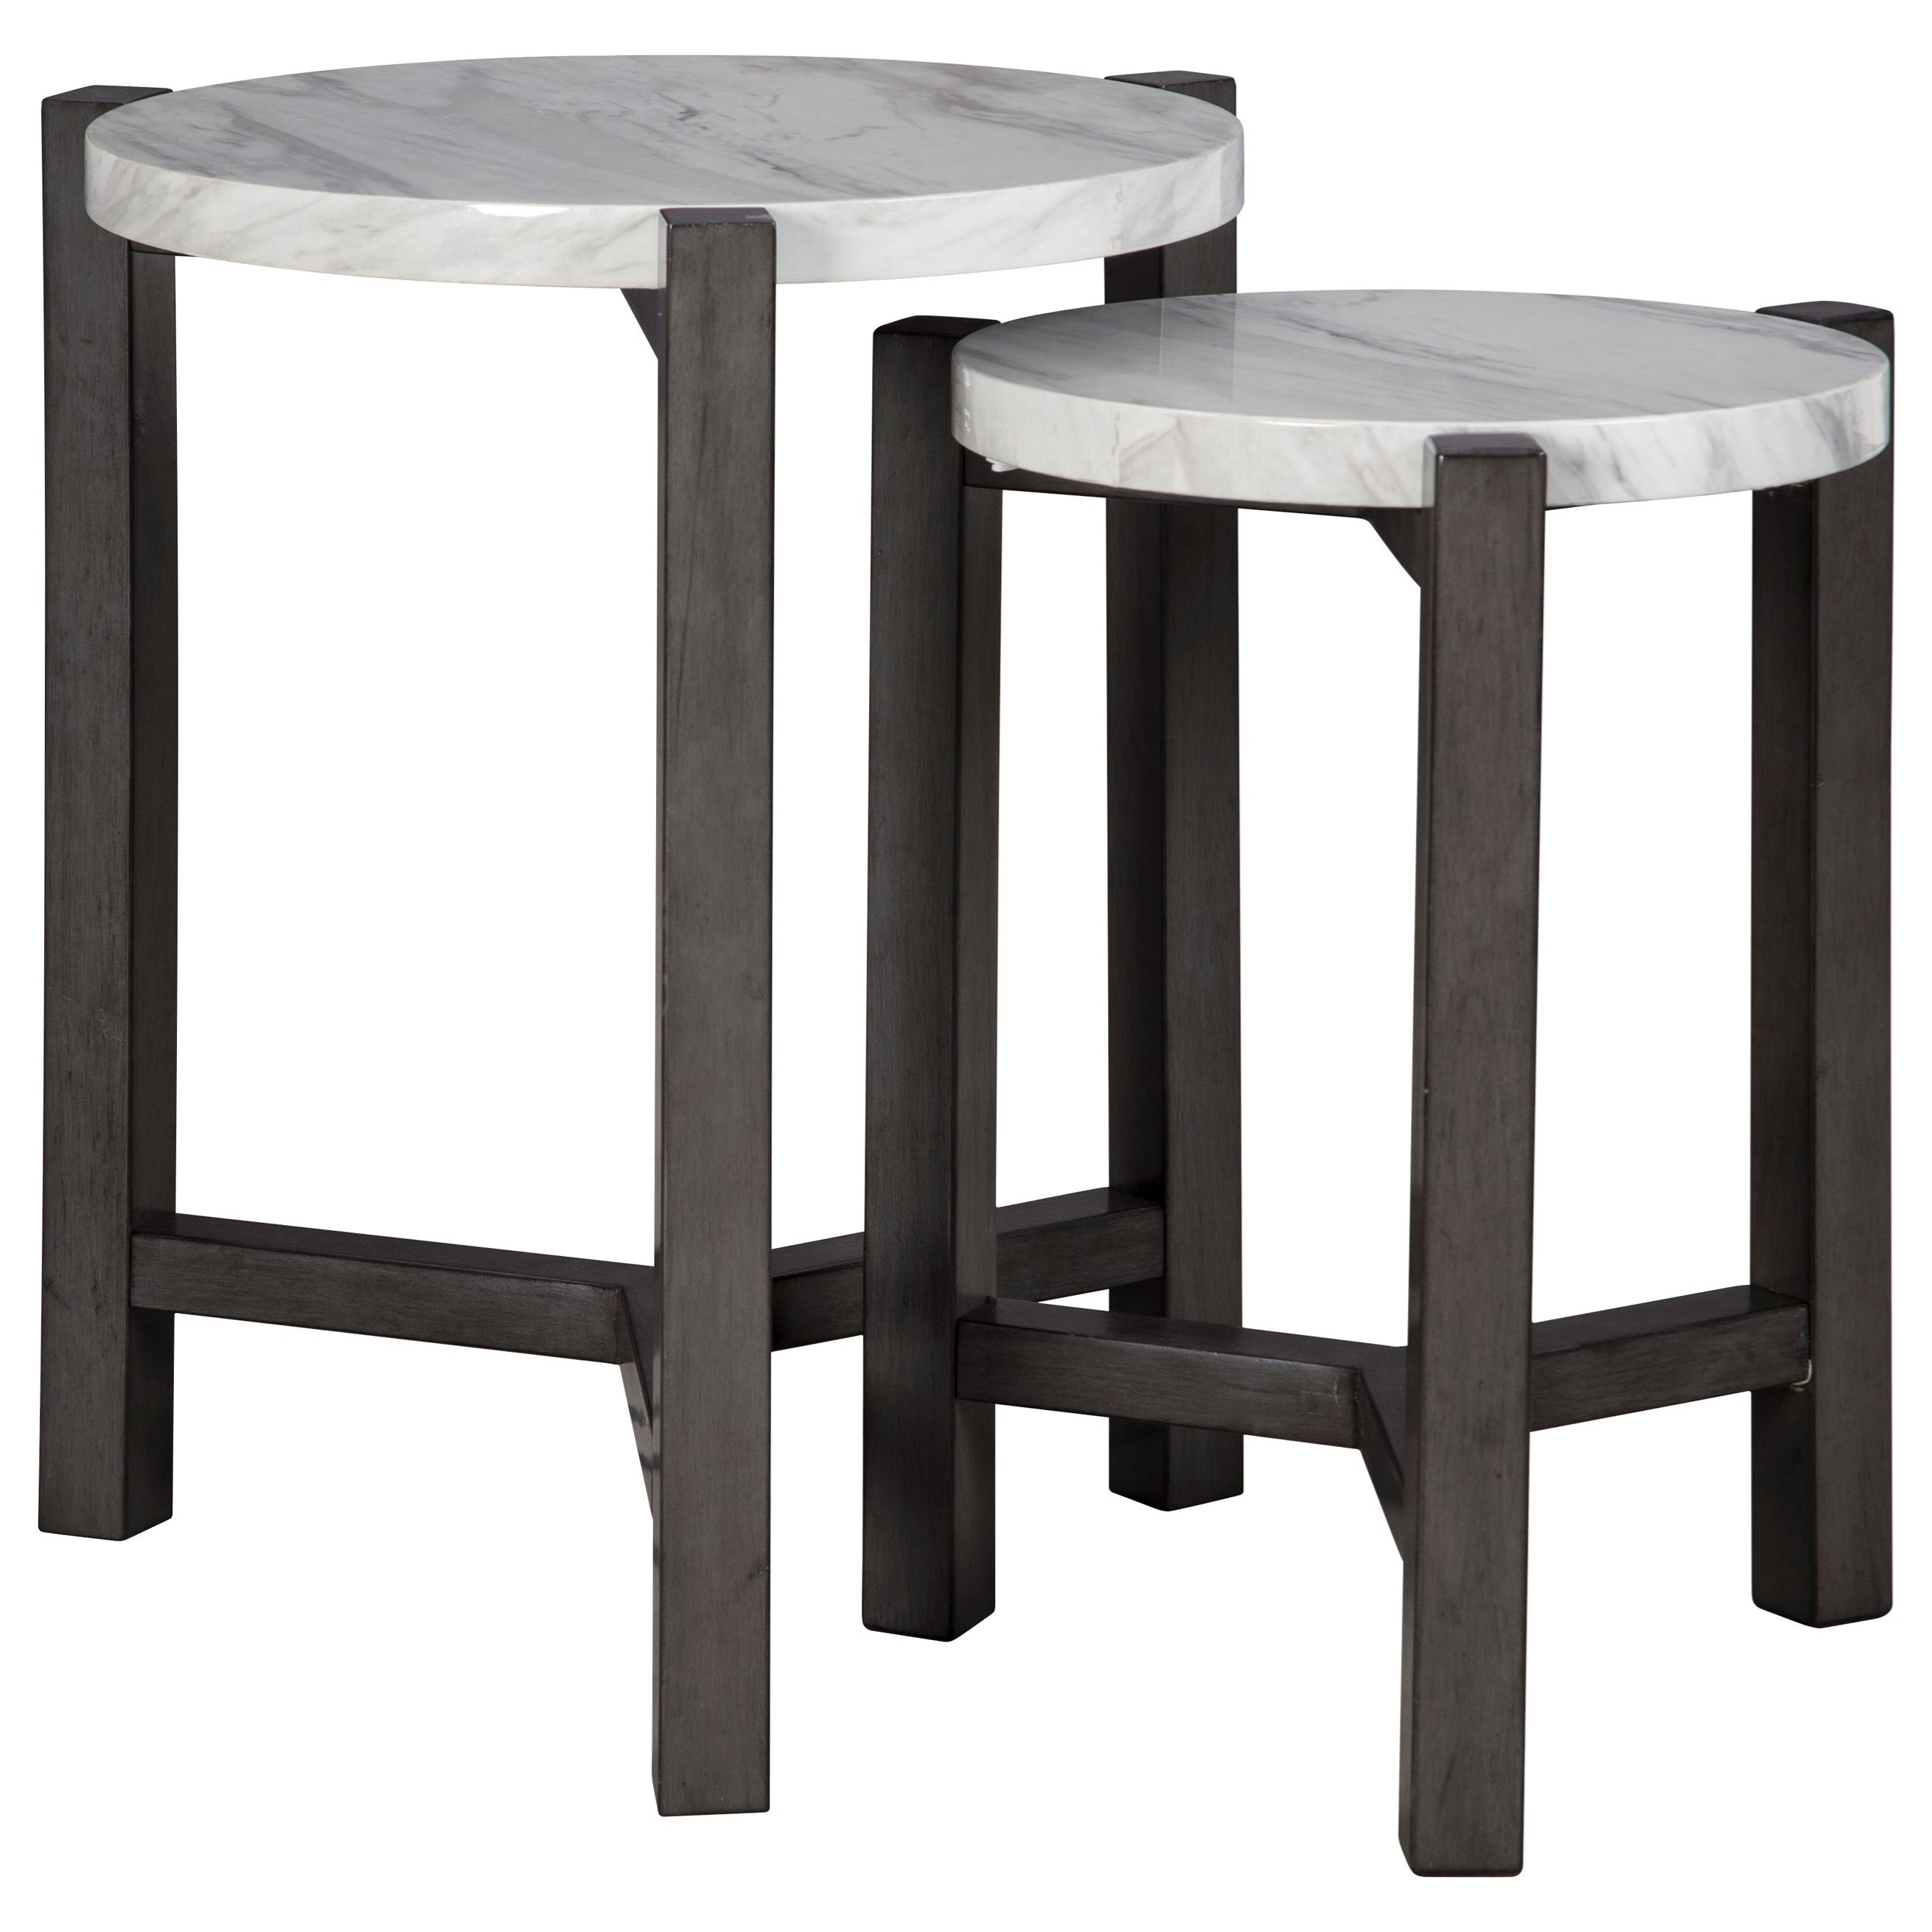 Crossport Accent Table Set by Signature Design by Ashley at Beds N Stuff